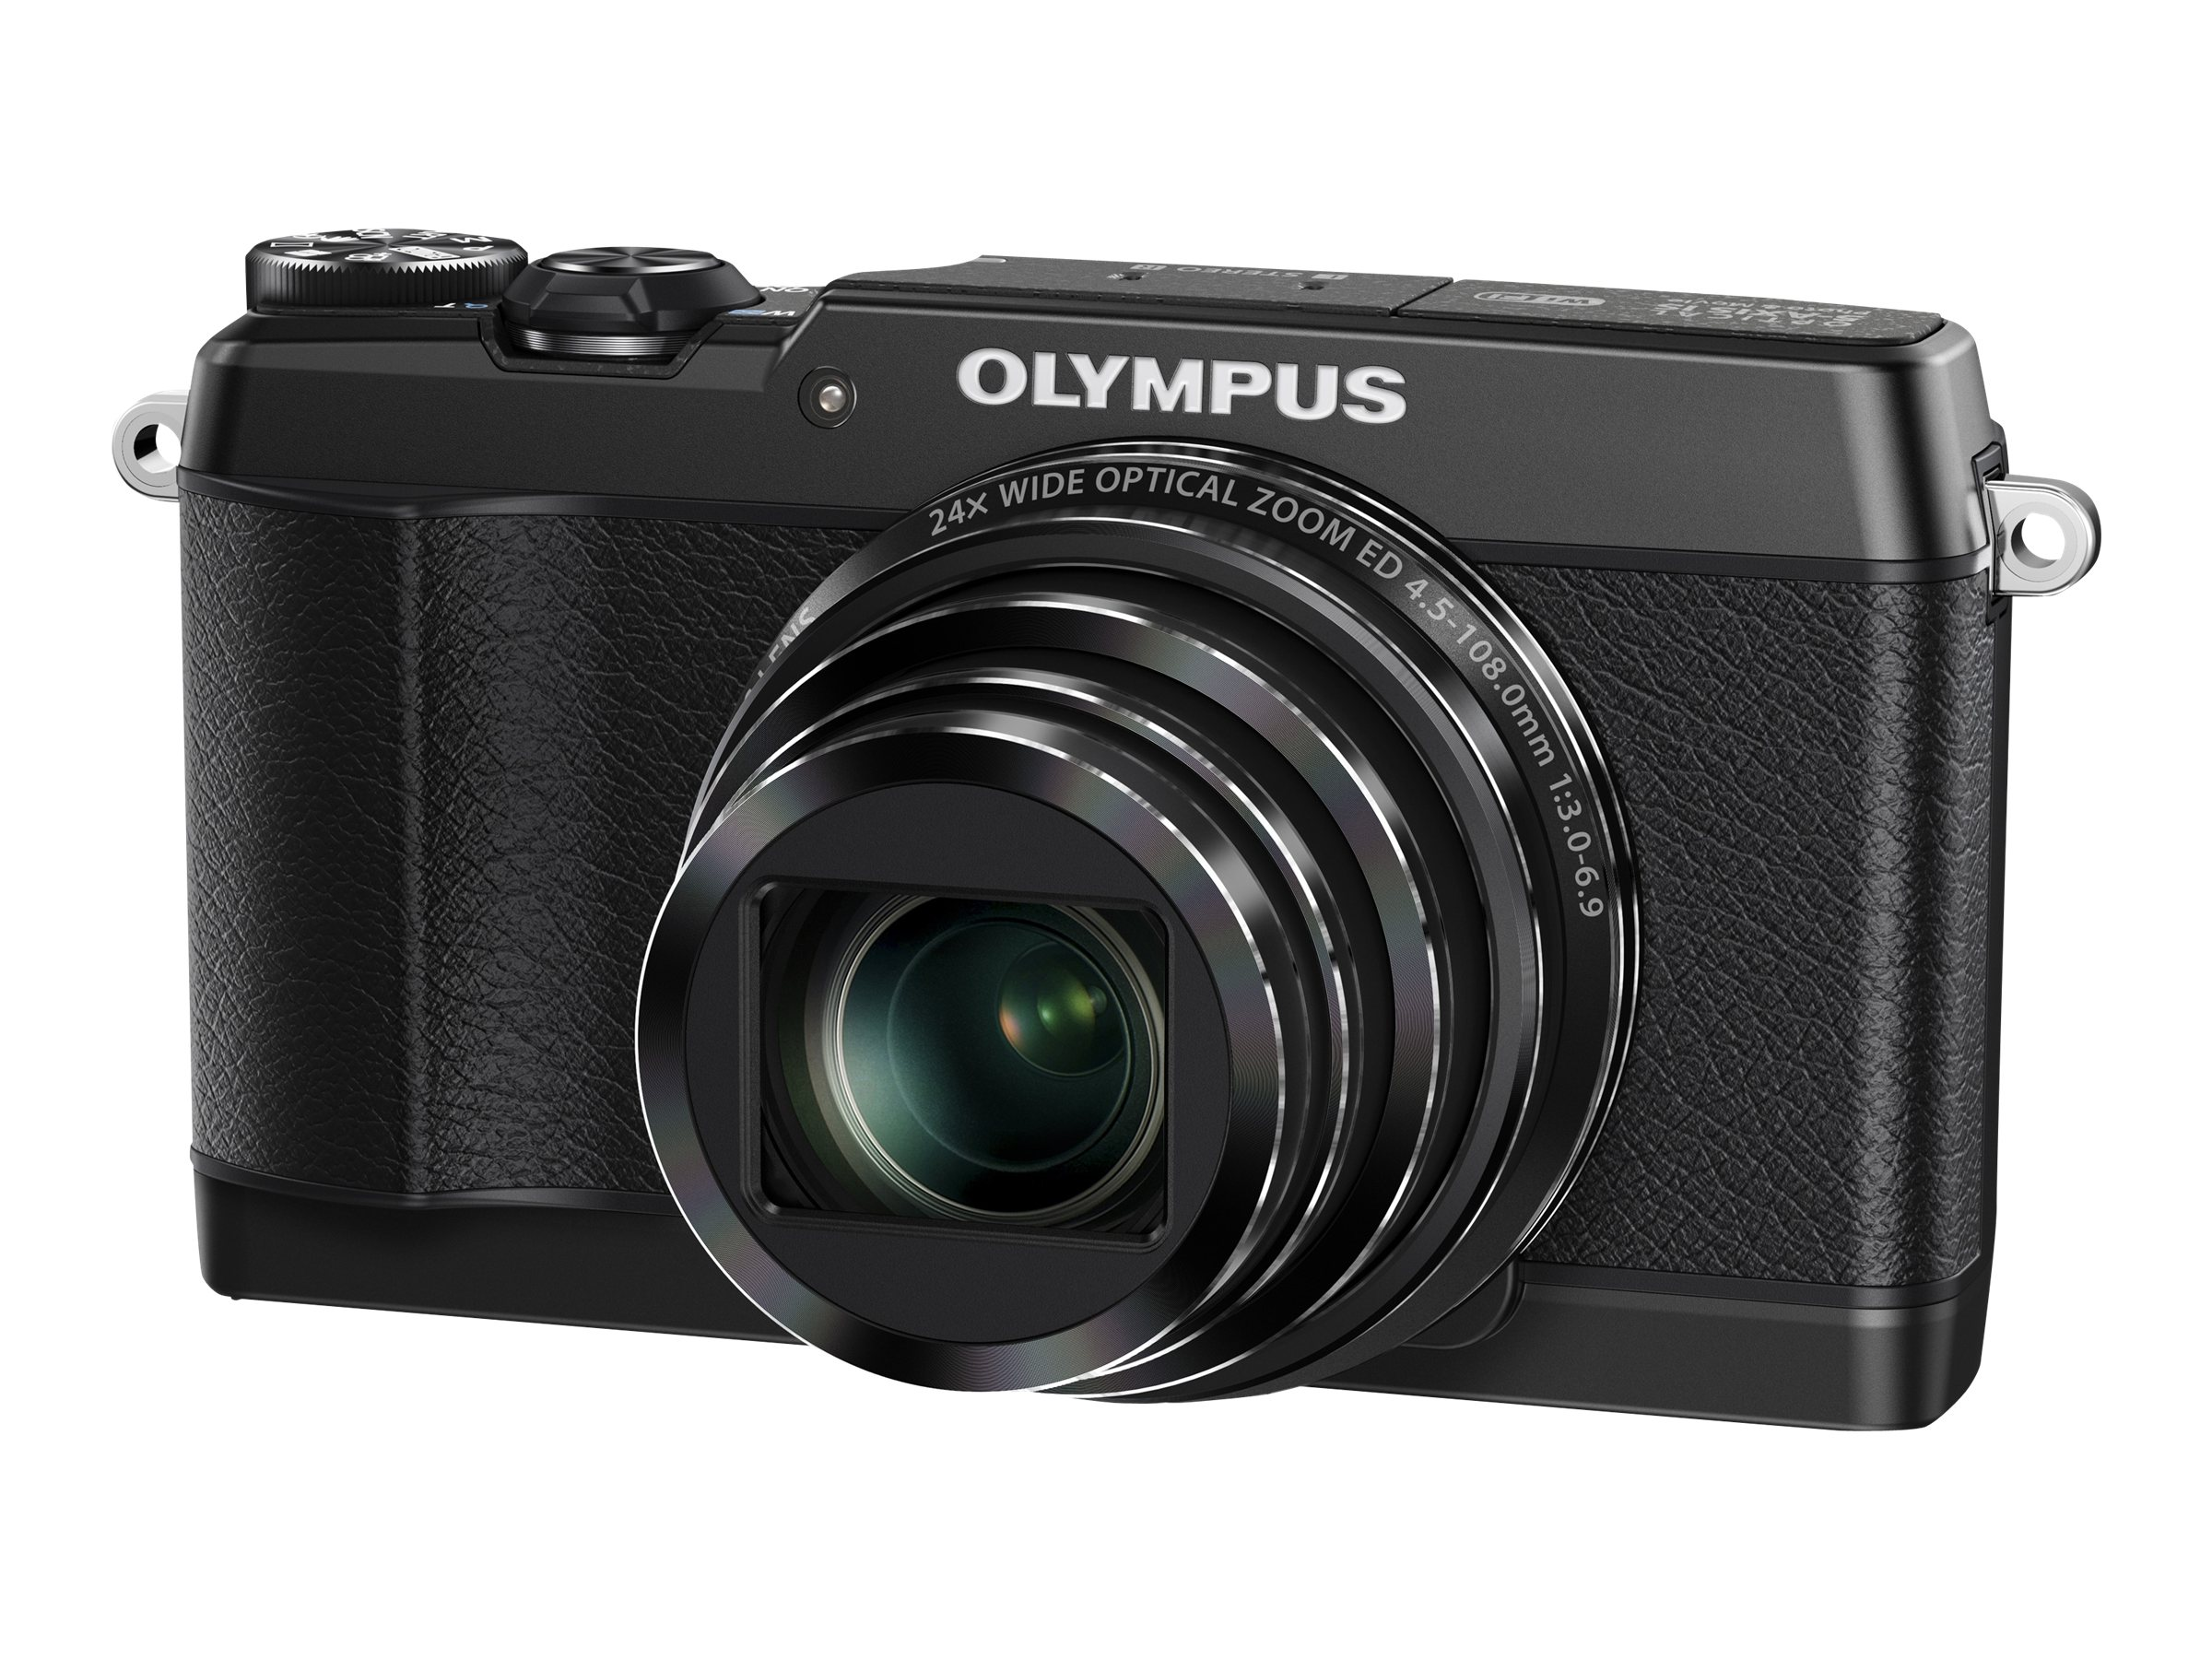 Olympus Stylus SH-1 Digital Camera, 16MP, Black